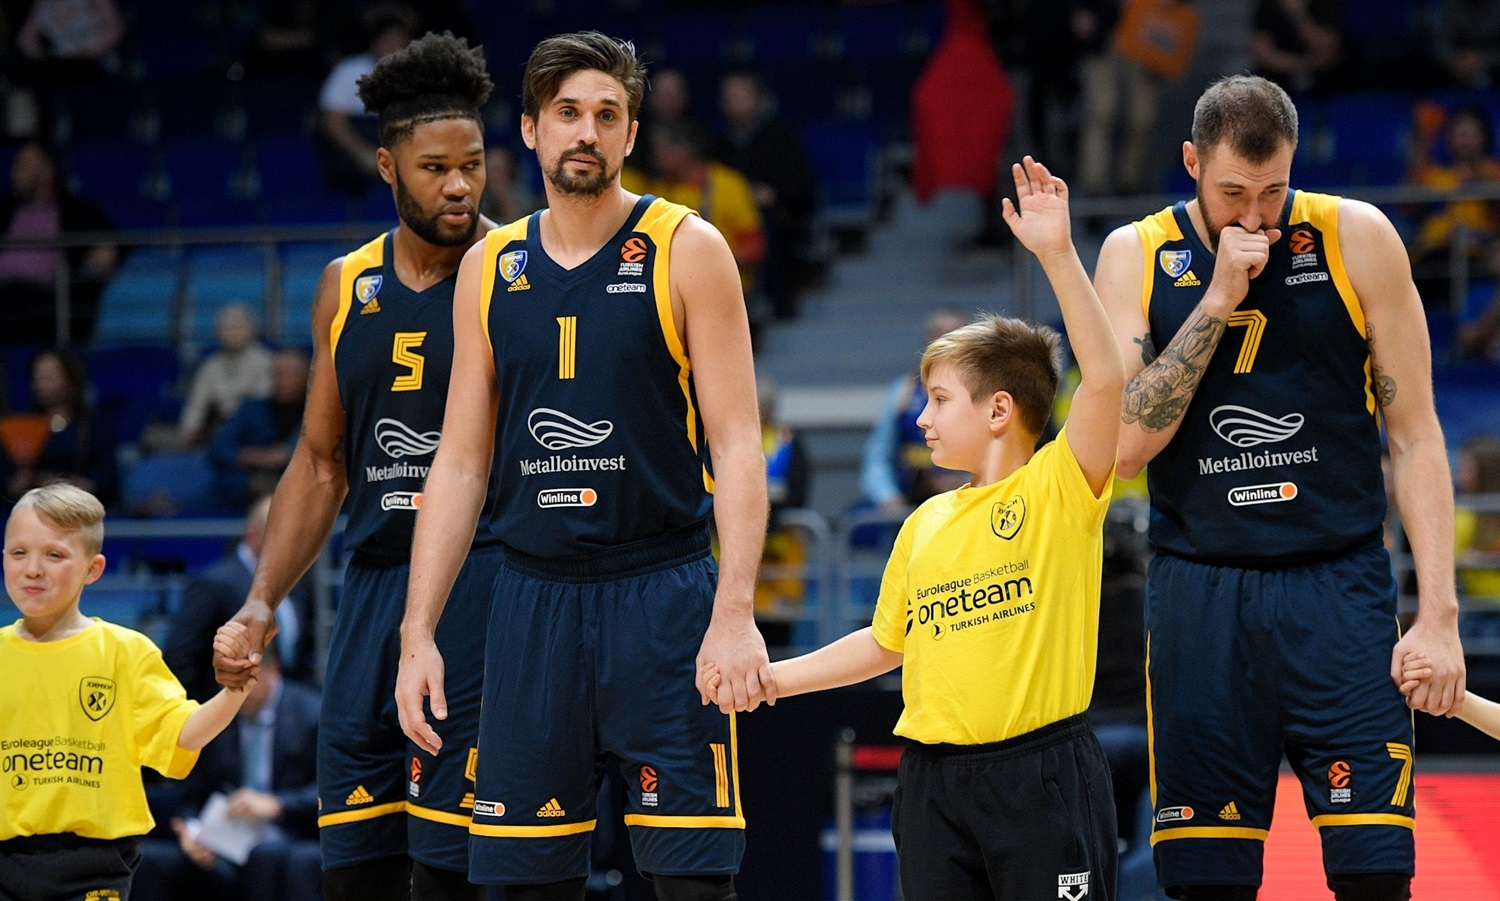 One Team Games - Khimki Moscow Region vs. ALBA Berlin - EB19